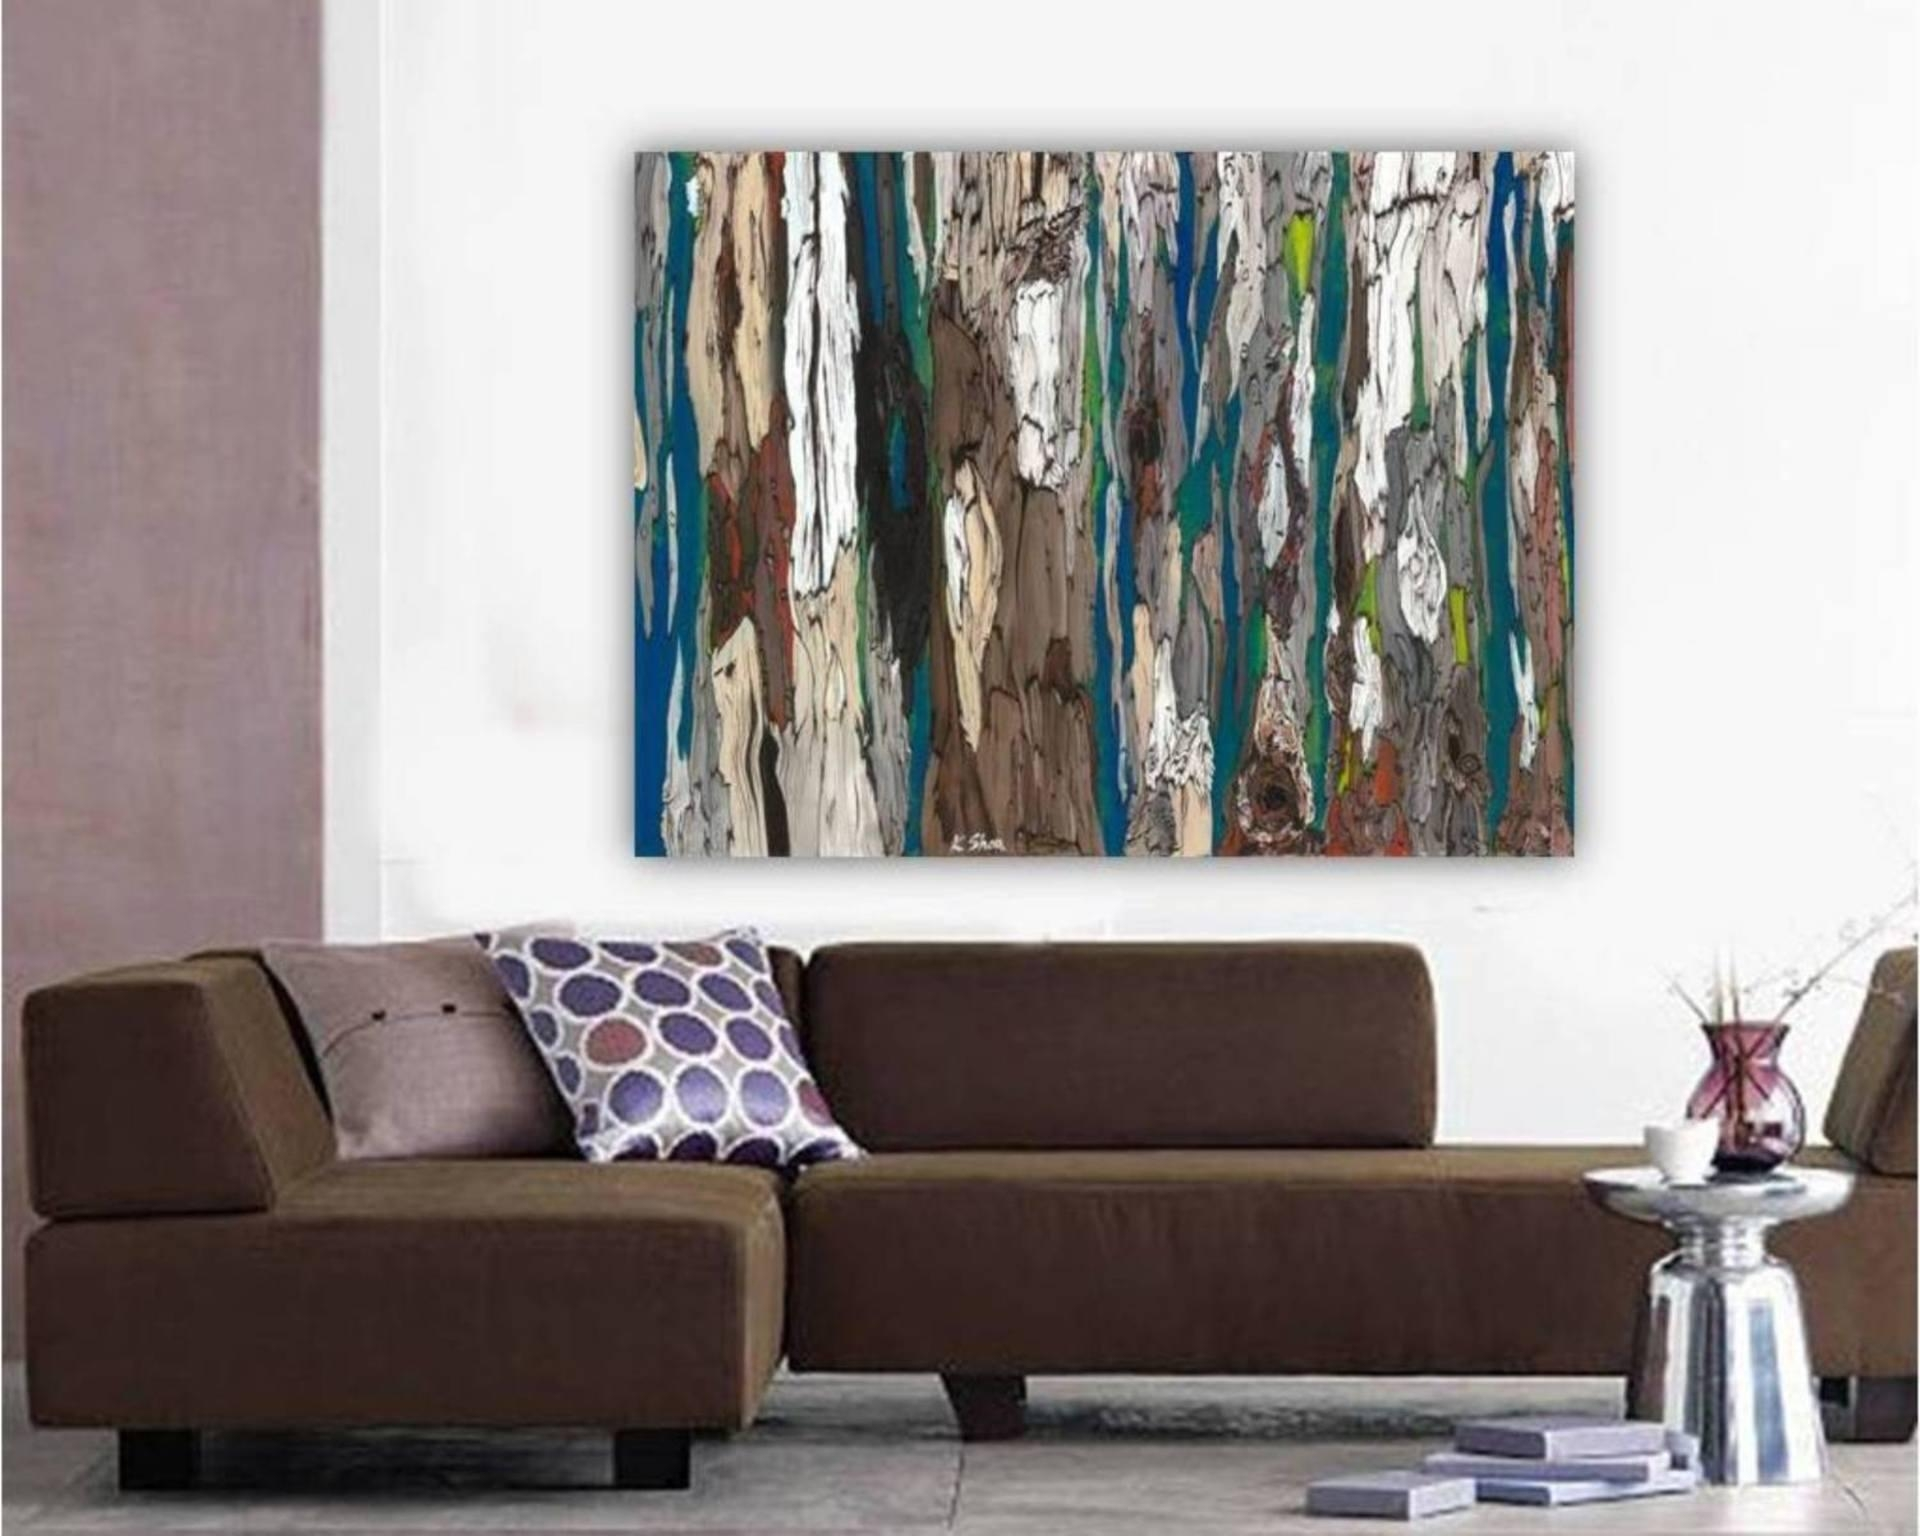 Wall Design: Abstract Wall Art Images (Image 19 of 20)